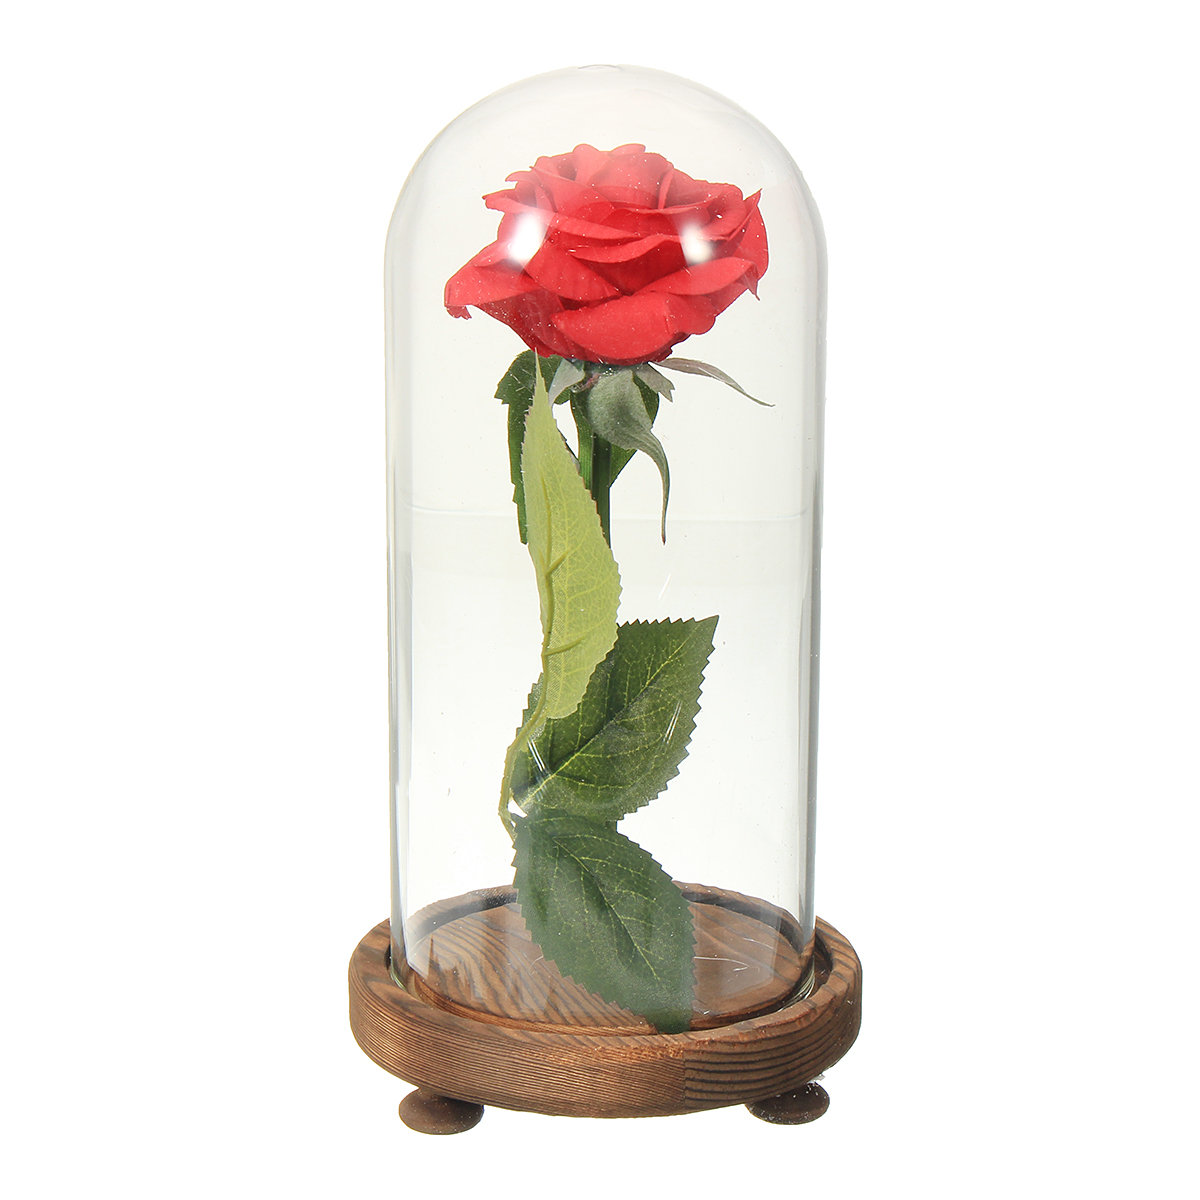 Beauty And The Beast The Little Prince Glass Cover Fresh Preserved